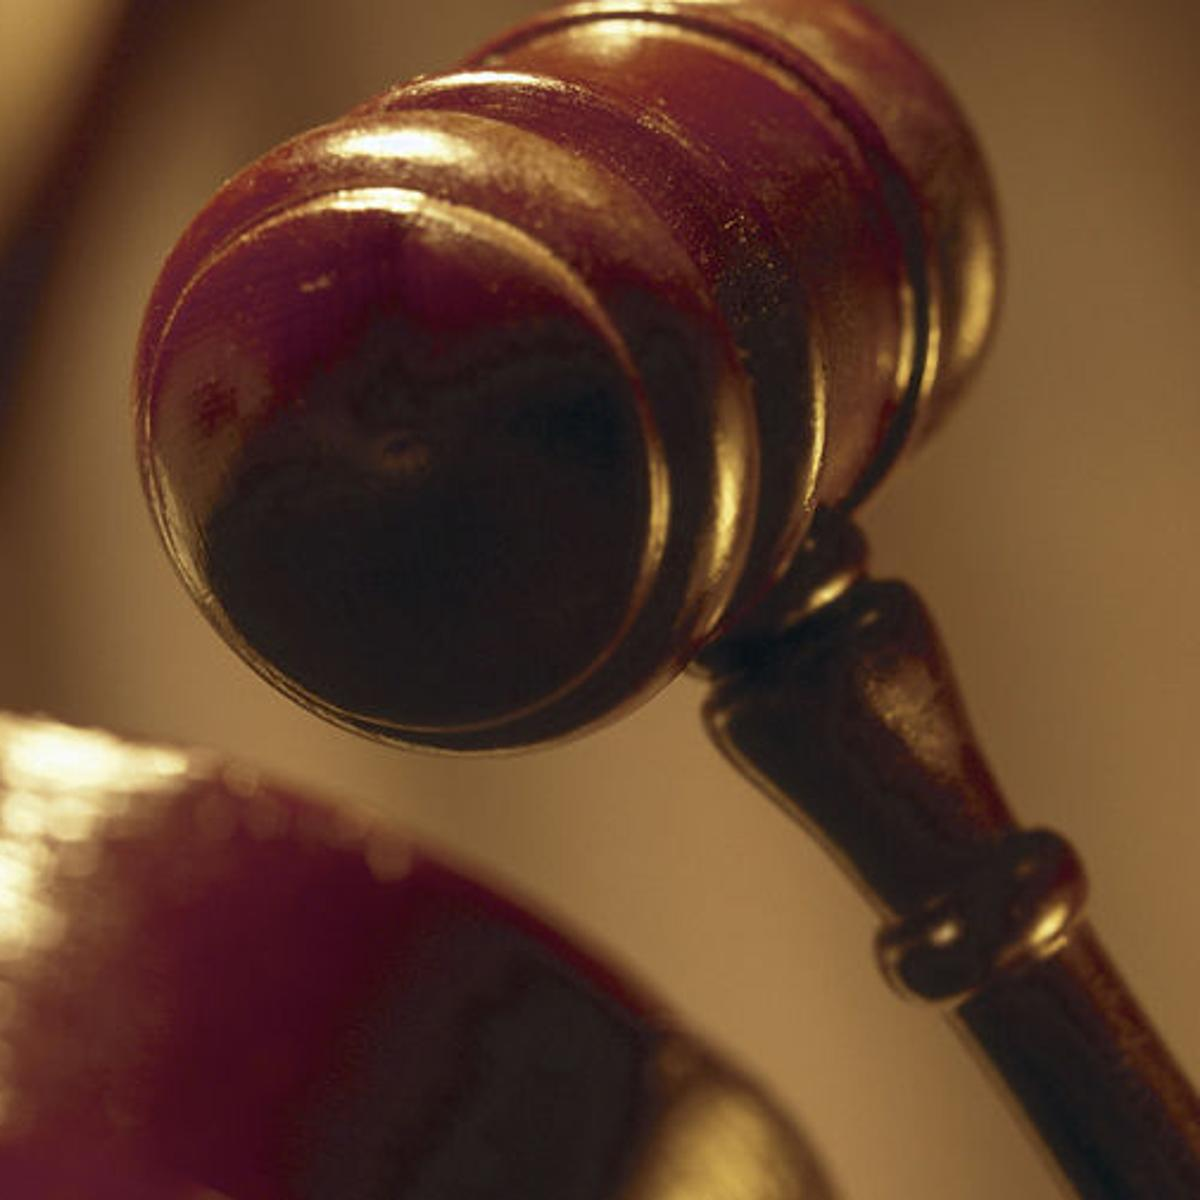 Four judges named for 16th Judicial Circuit | Local News